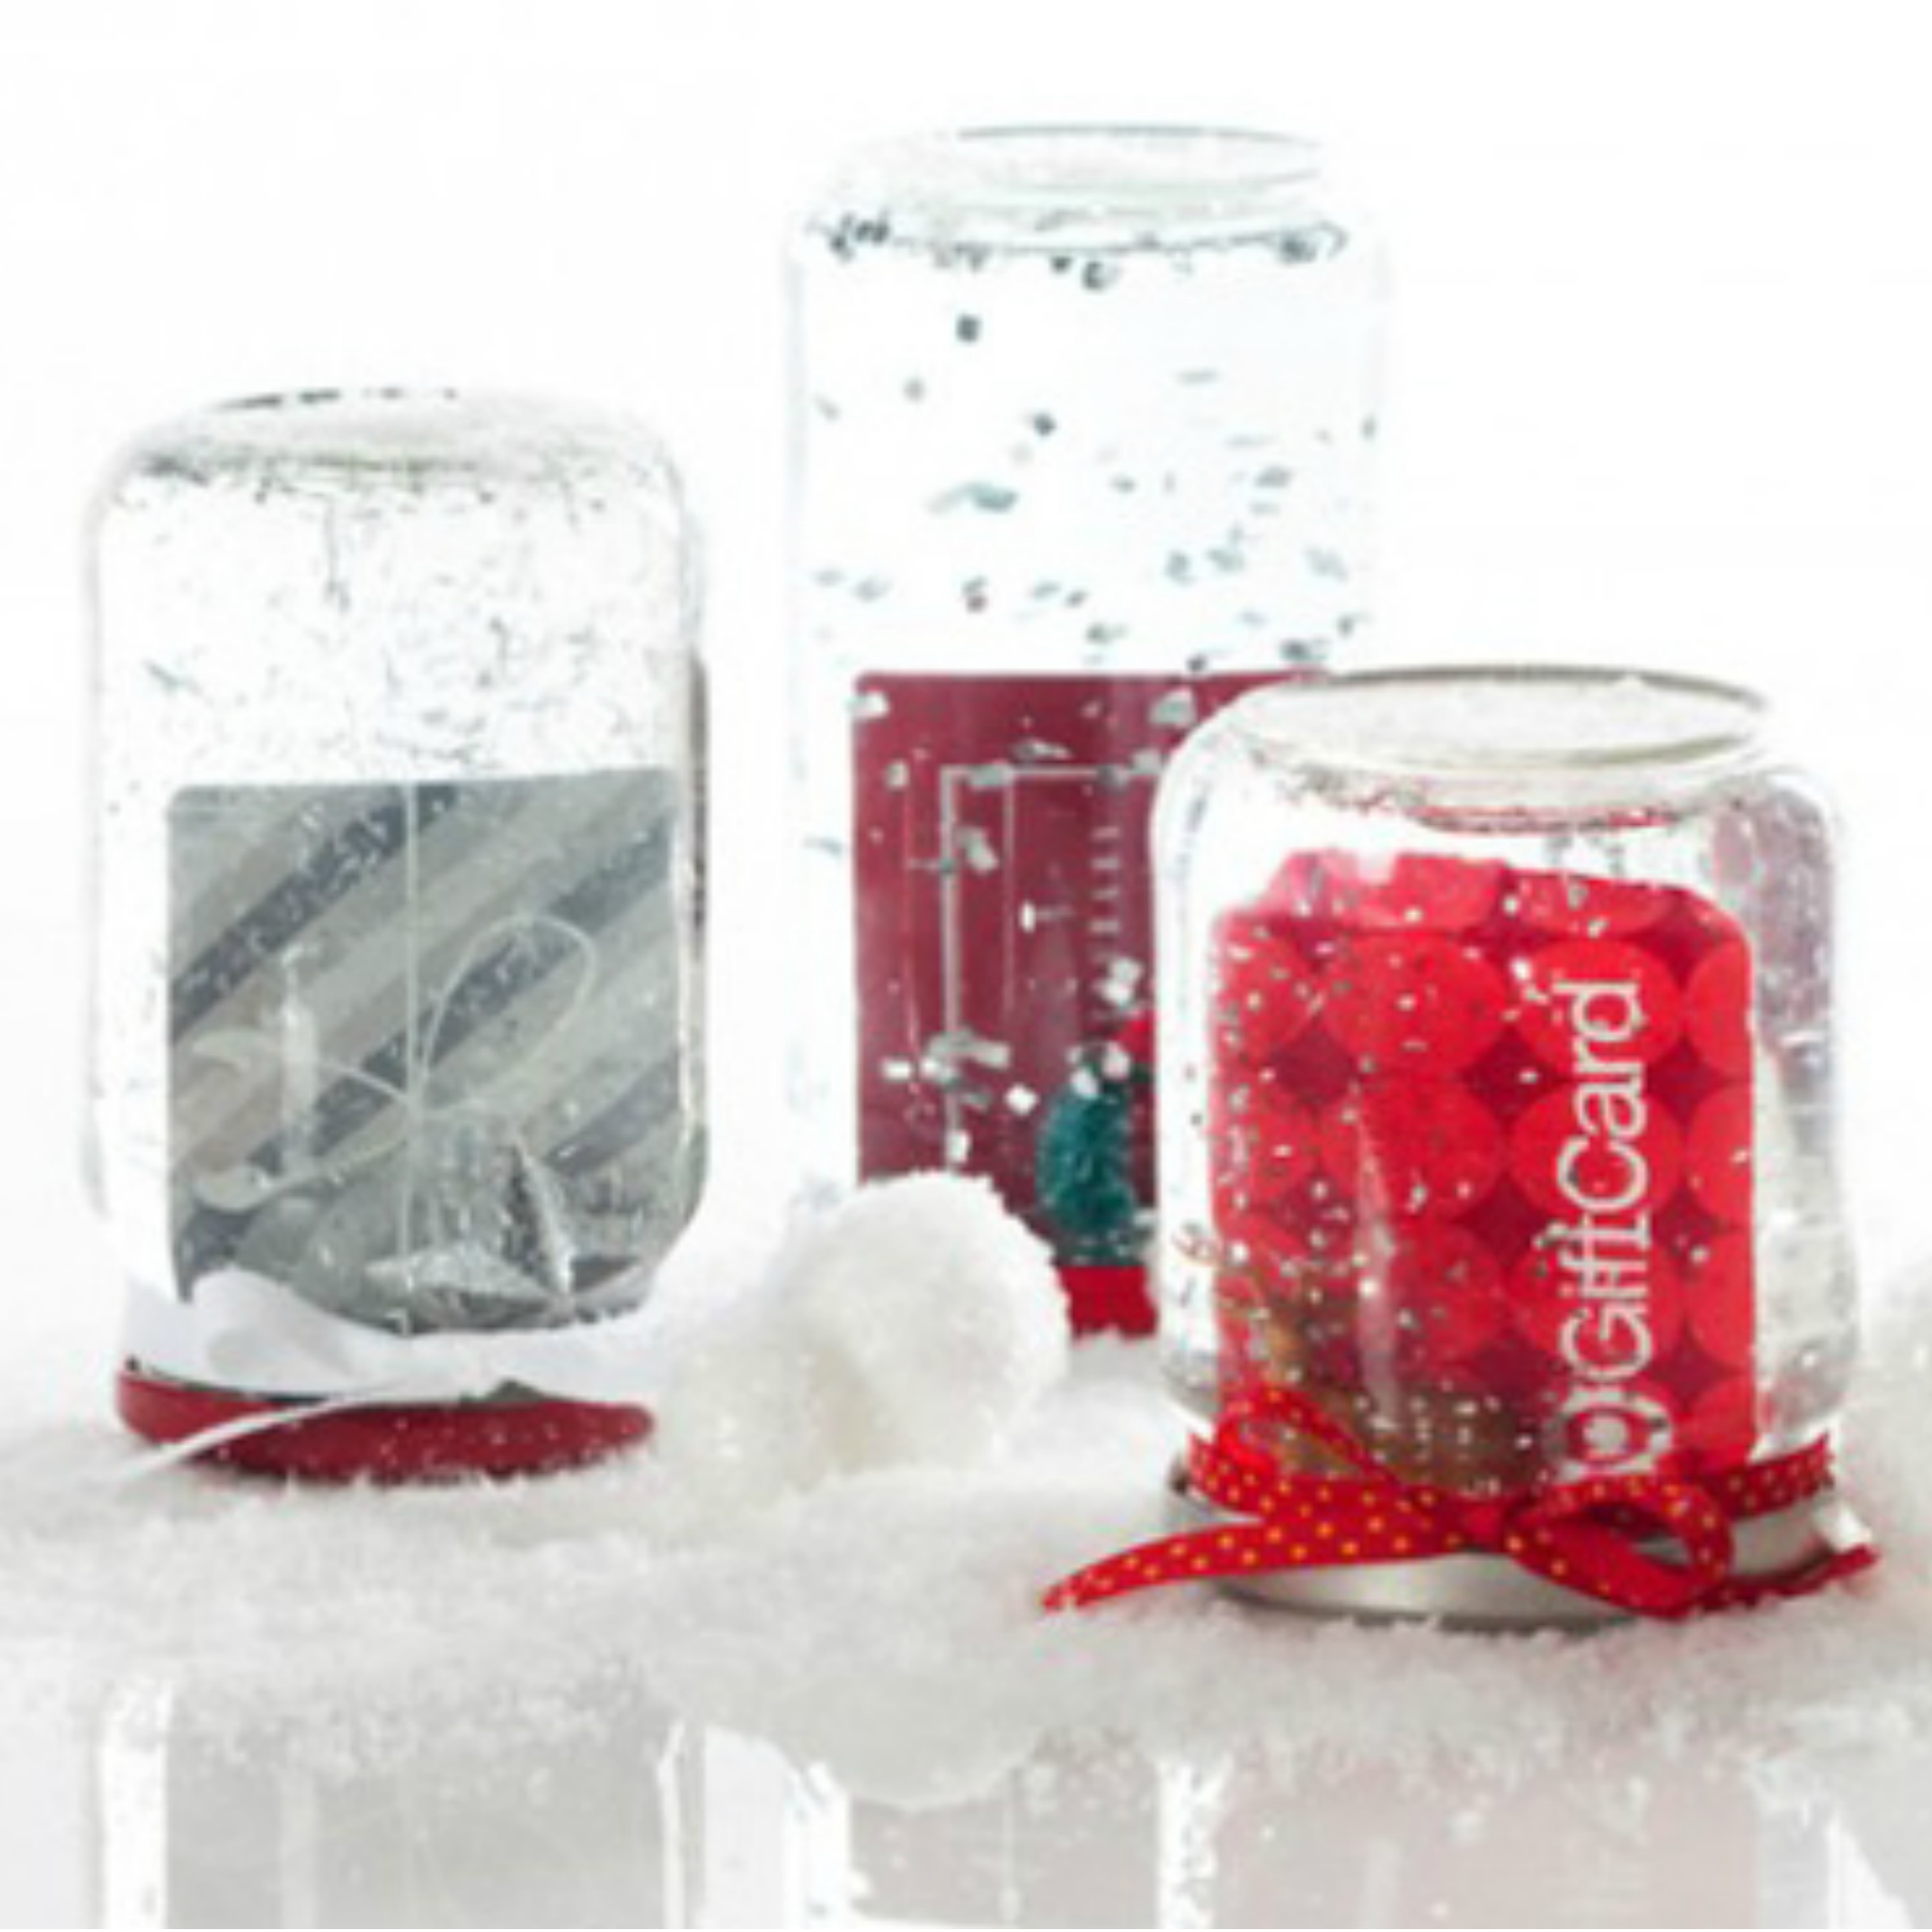 How to make gift cards more special: Create a DIY gift card snowglobe like this one from Smarty Had A Party!